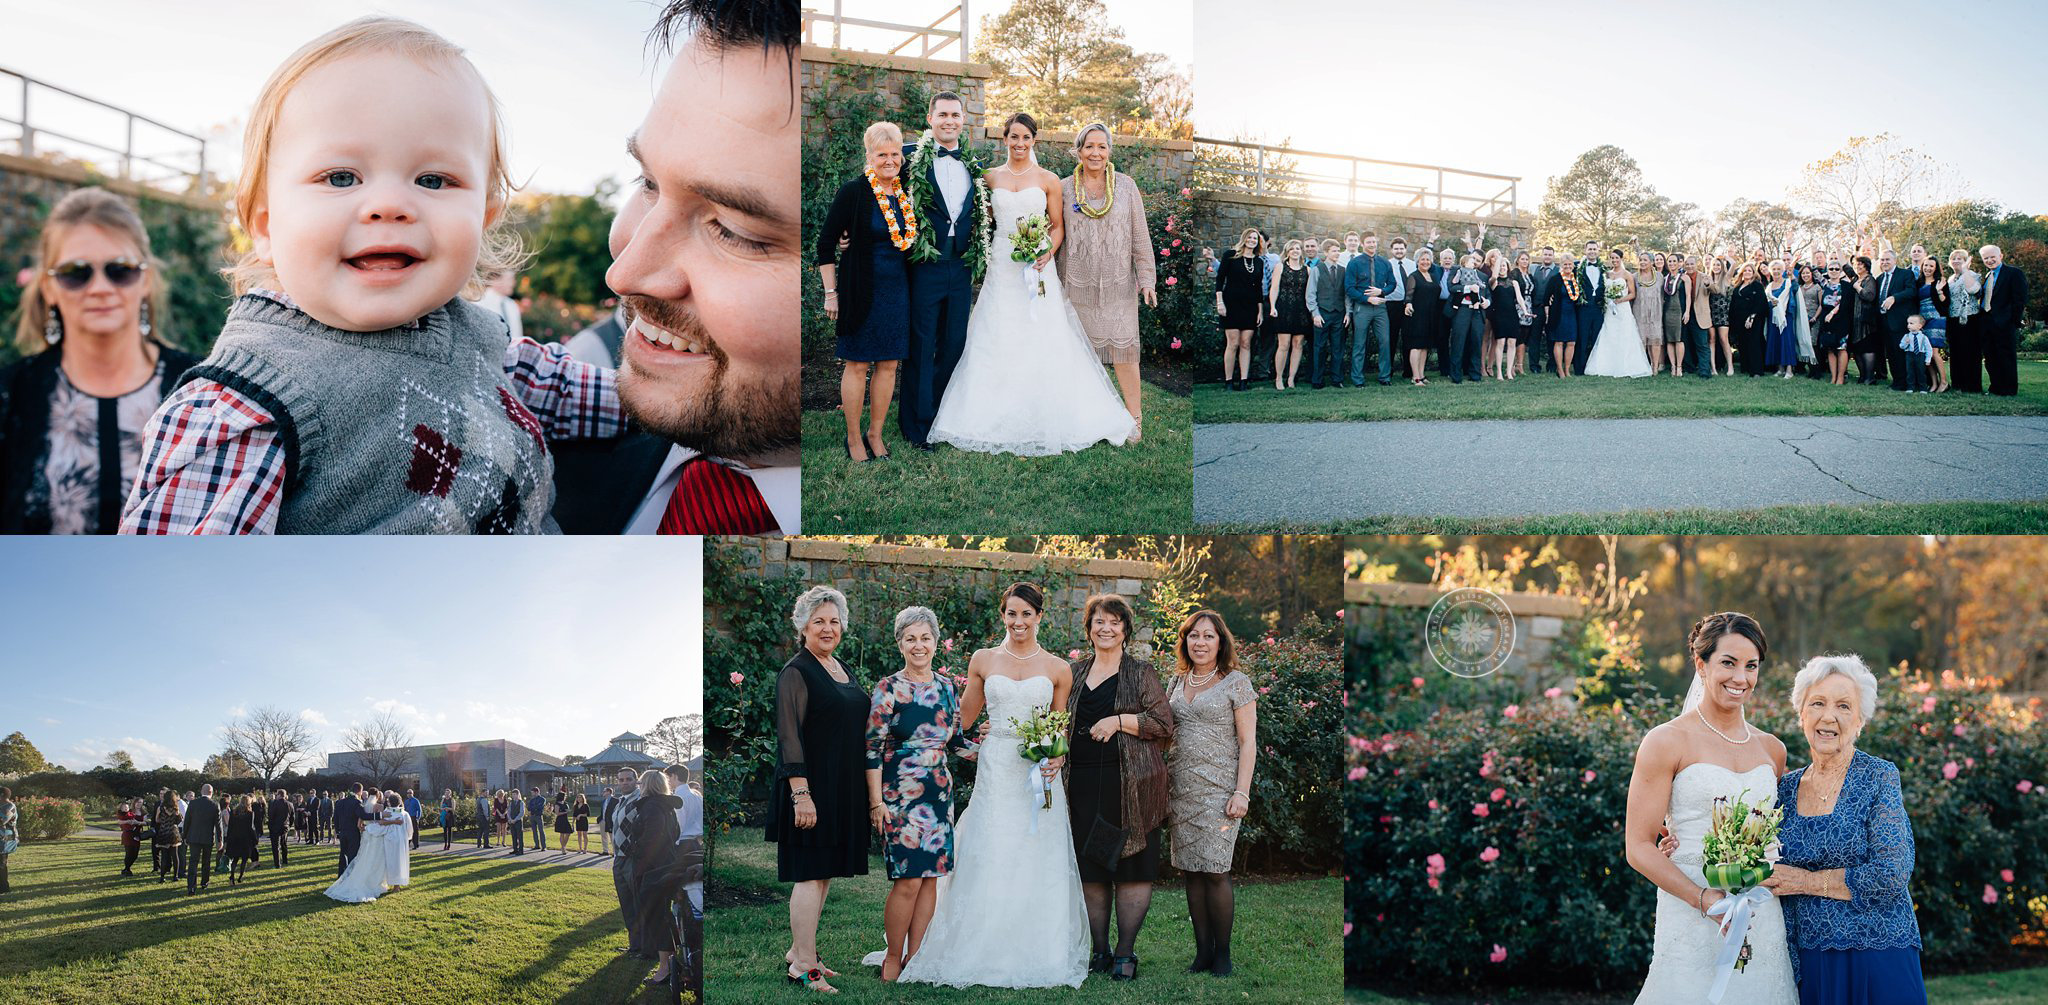 norfolk-wedding-photographer-family-formals-garden-wedding